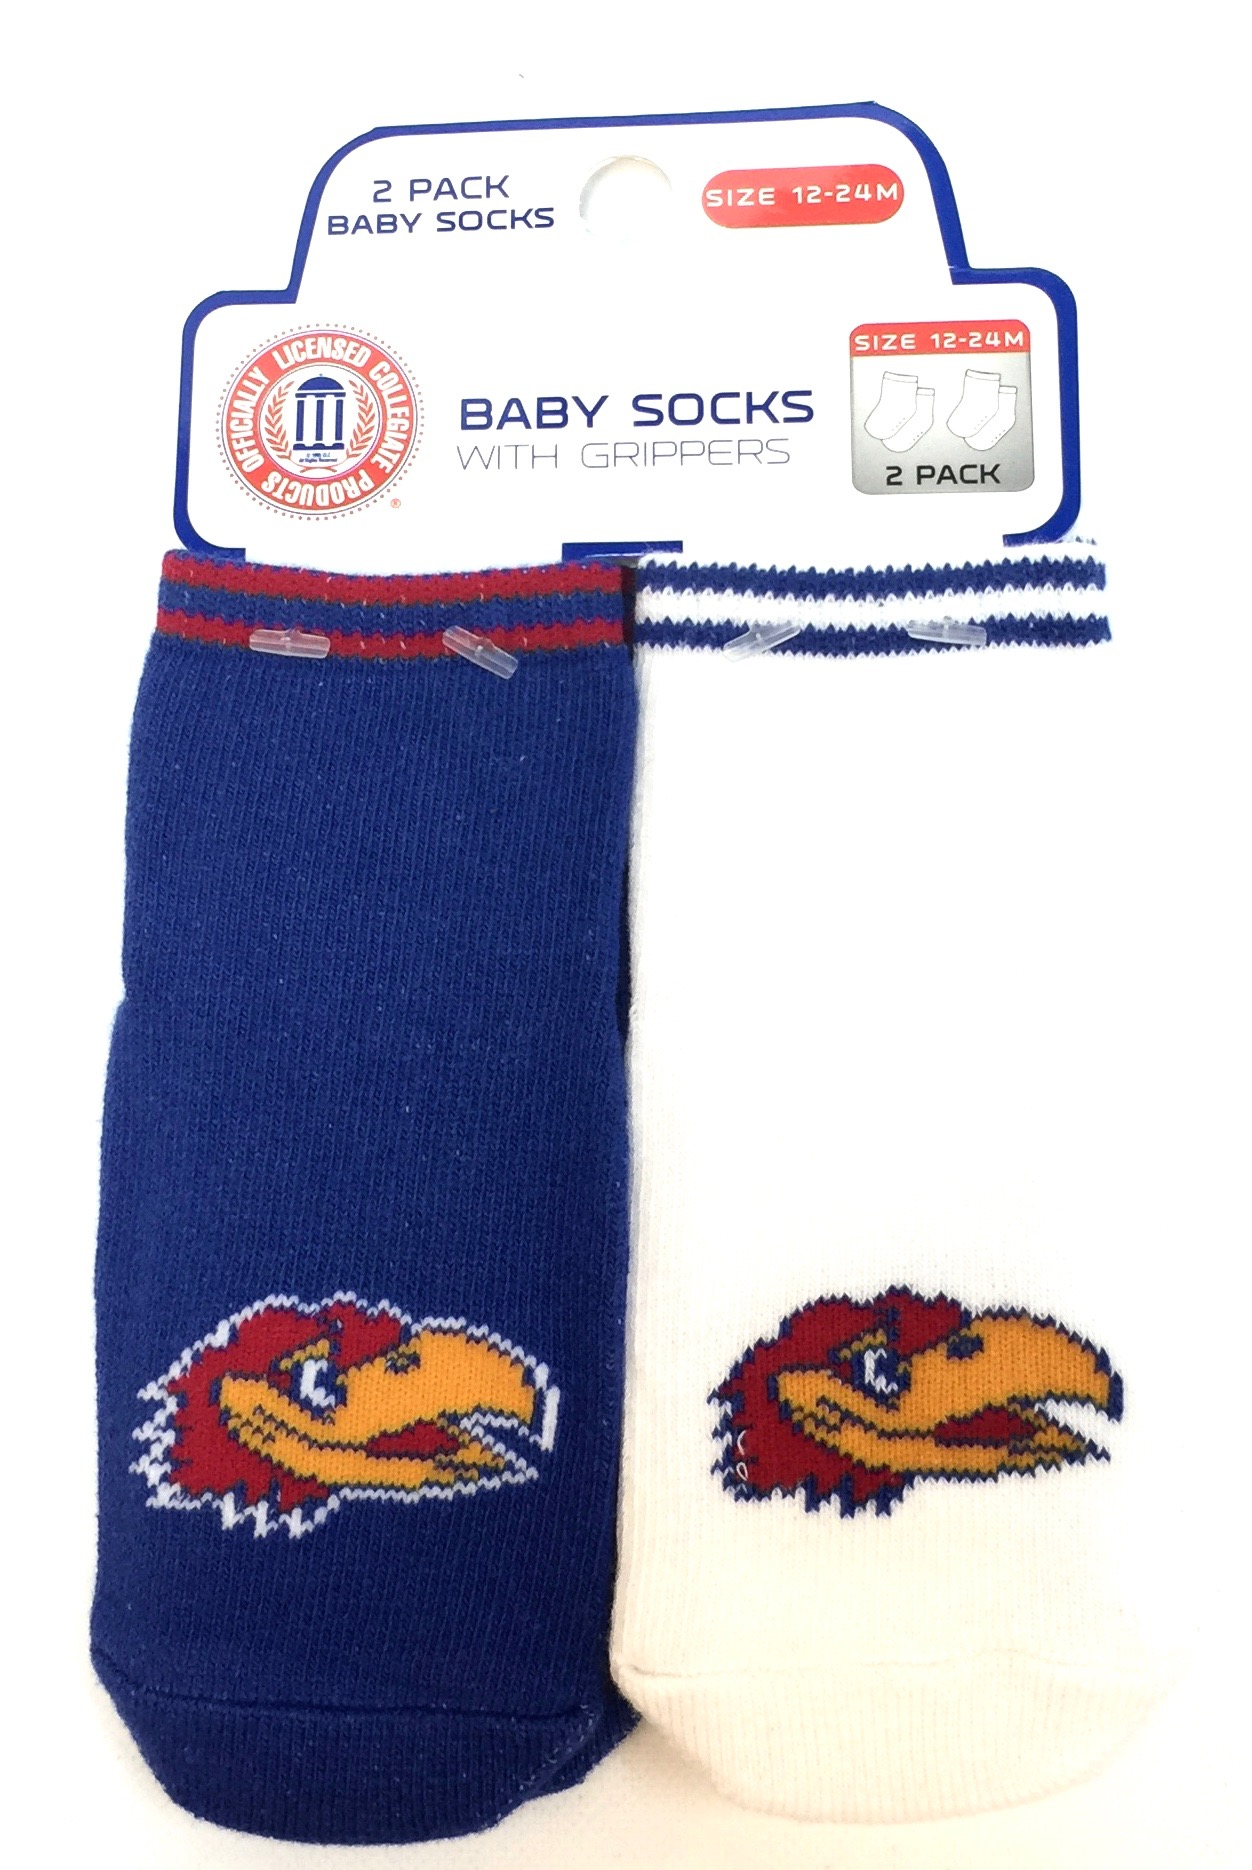 Carded 2 Pk Baby Socks w/Grippers - Kansas